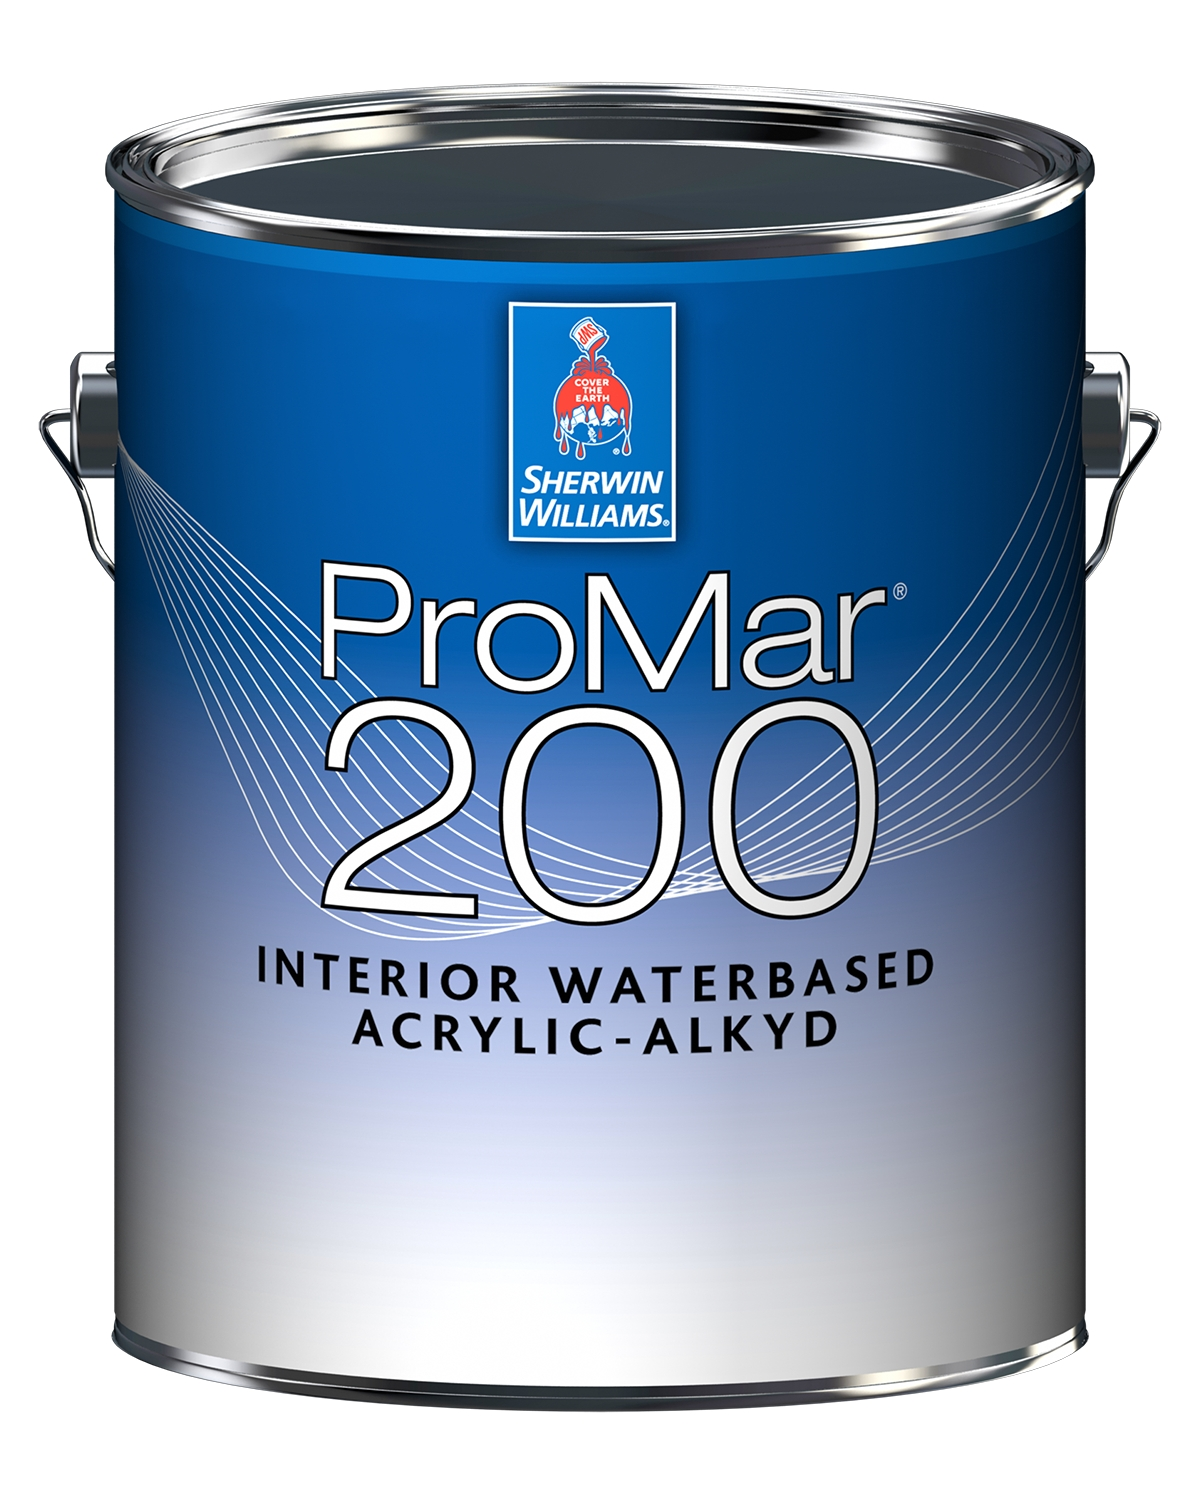 ProMar® 200 Interior Waterbased Acrylic-Alkyd